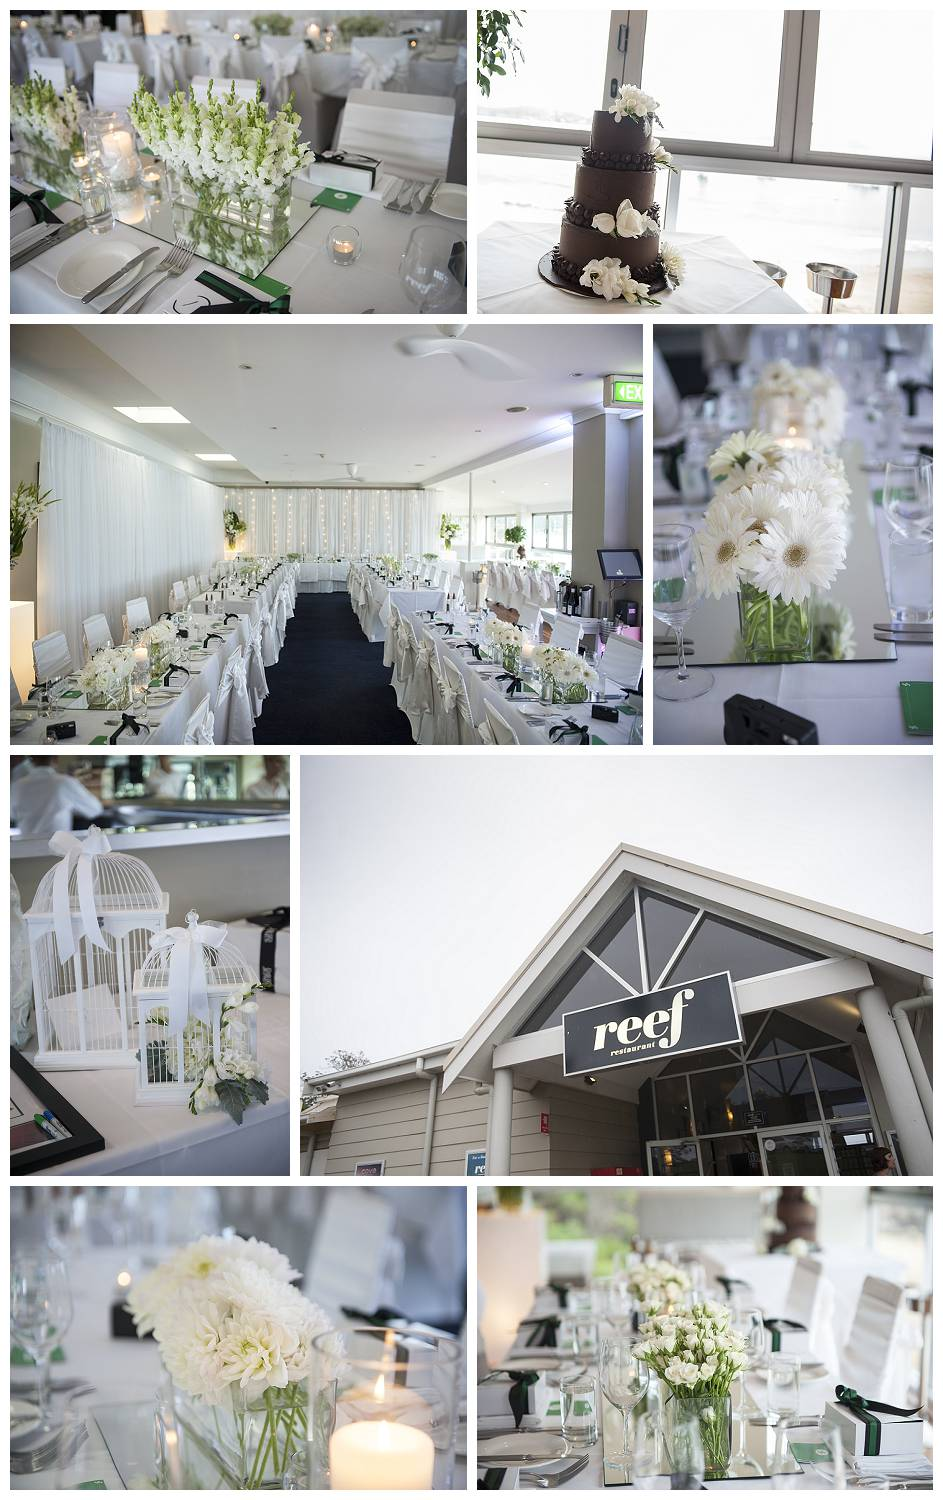 Some of the details at The Reef wedding venue